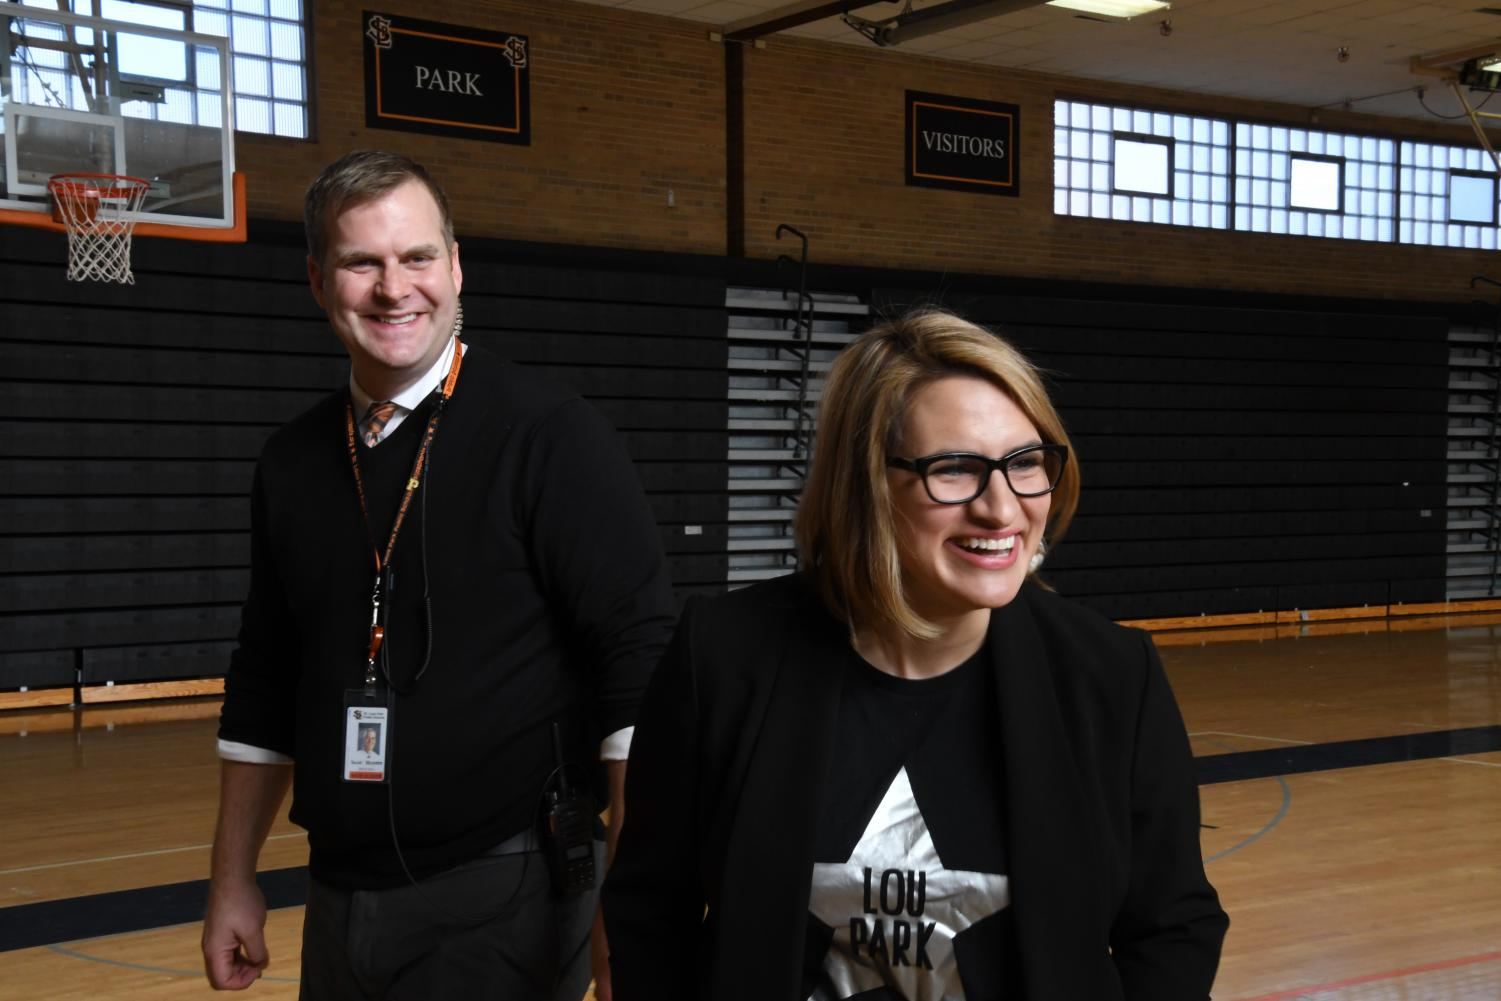 Back home: Lt. Gov.-elect Peggy Flanagan spoke to civics teacher Brad Brubaker's freshman honors civics Nov. 15. Flanagan is a graduate of Park and returned to record an interview with Park alumna and journalist Mary Lahammer.